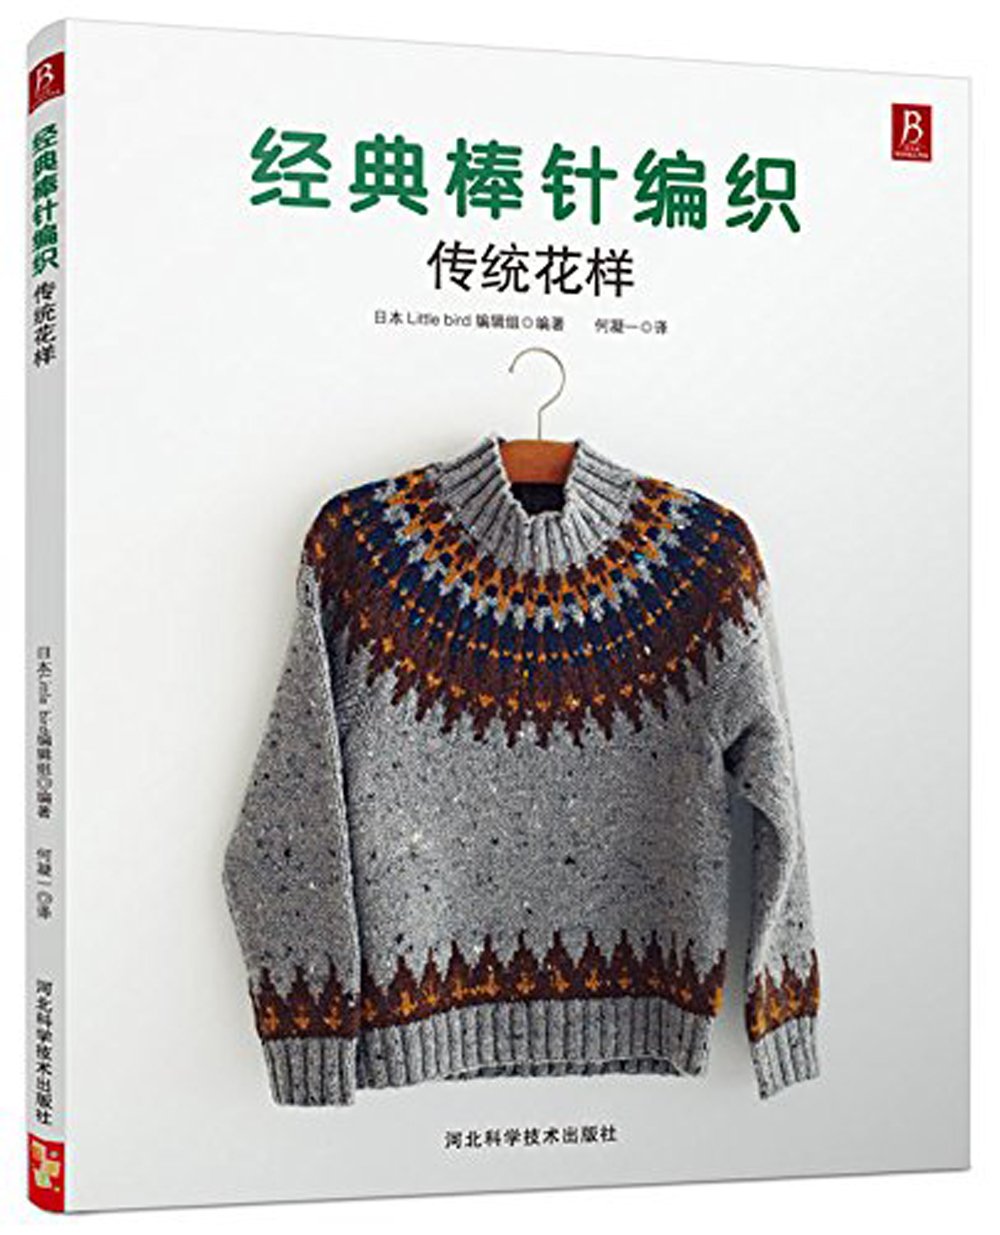 Japanese Classical rod knitting: traditional patterns in chineseJapanese Classical rod knitting: traditional patterns in chinese